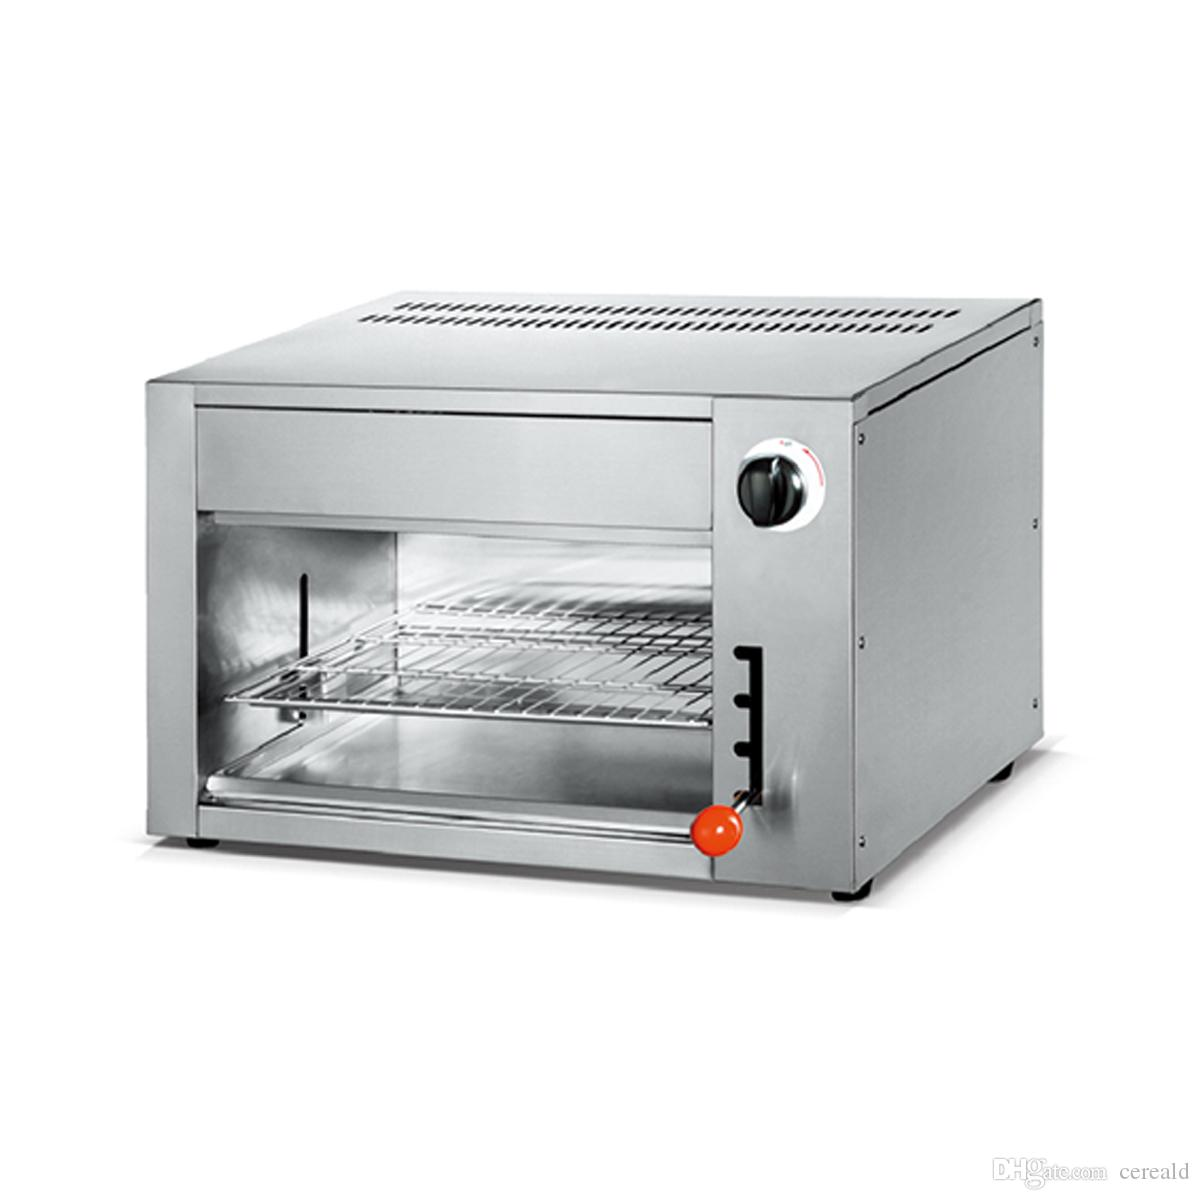 Incroyable 2018 Commercial Gas Salamander Broiler By 304 Stainless Steel Temperature  Adjustable From Cereald, $789.95 | Dhgate.Com